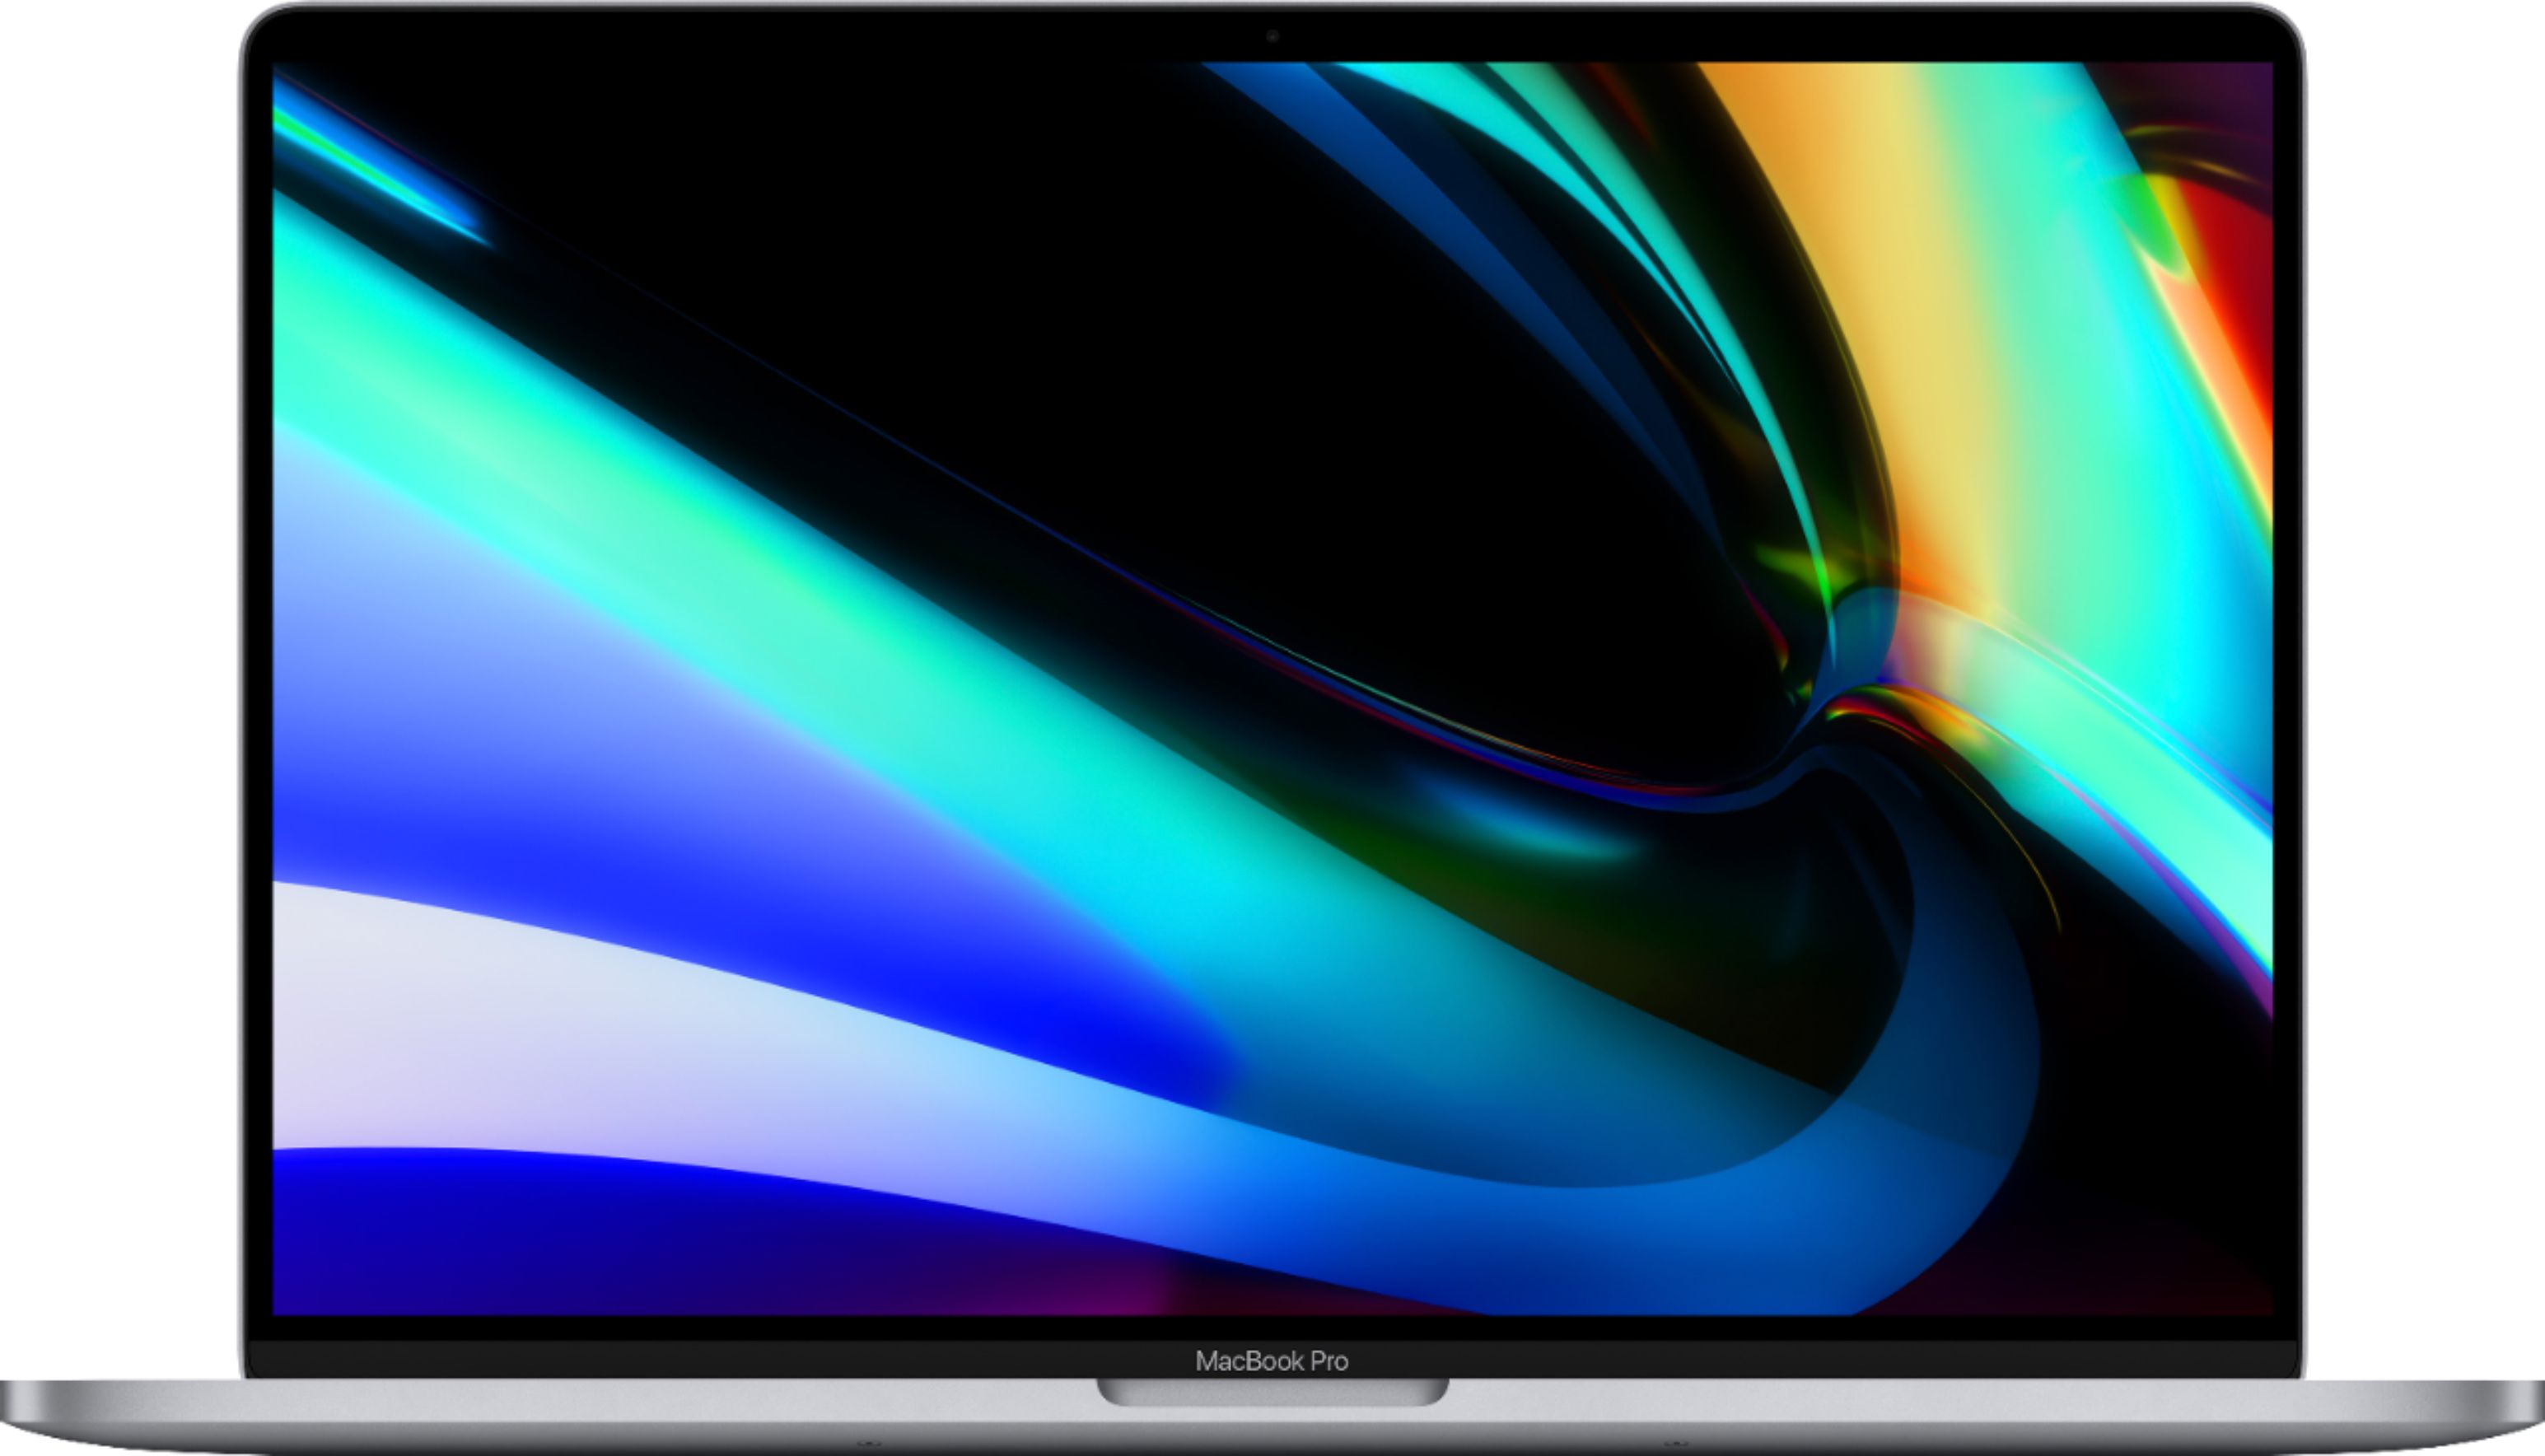 "Front Zoom. Apple - Geek Squad Certified Refurbished MacBook Pro - 16"" - Intel Core i9 - 16GB Memory - AMD Radeon Pro 5500M - 1TB SSD - Space Gray."